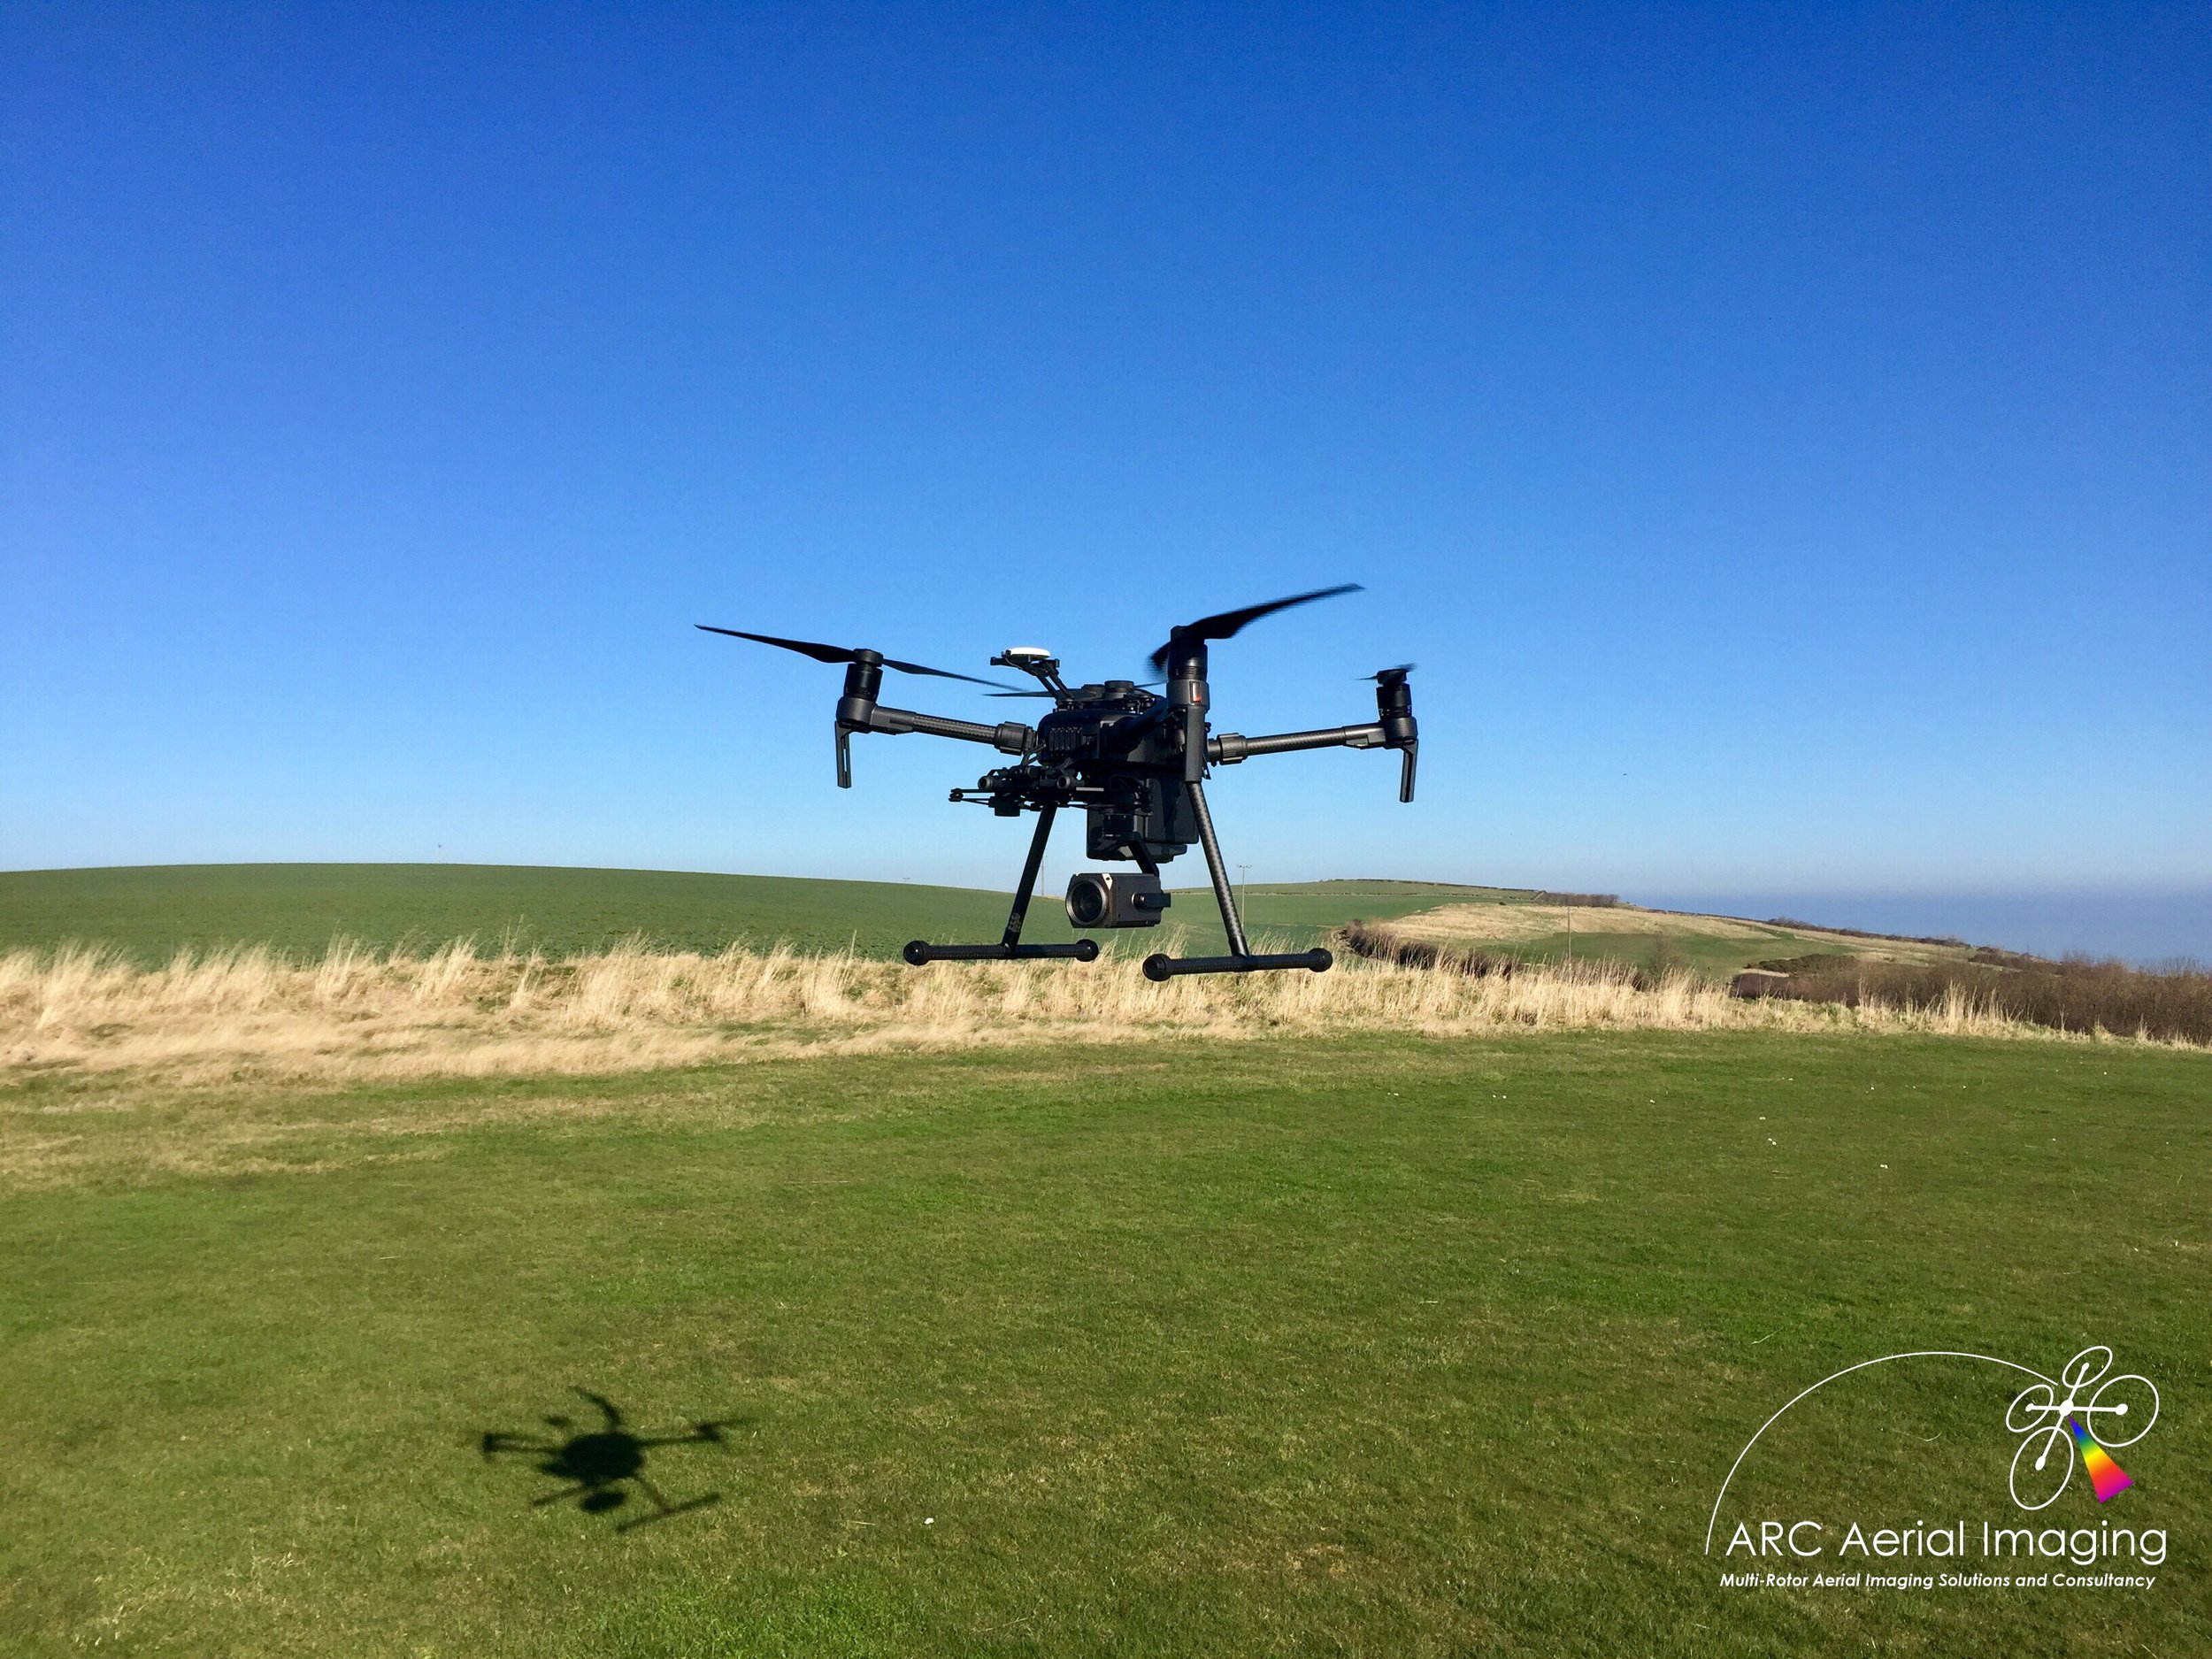 ARC Aerial Imaging-Matrice210_2.jpg